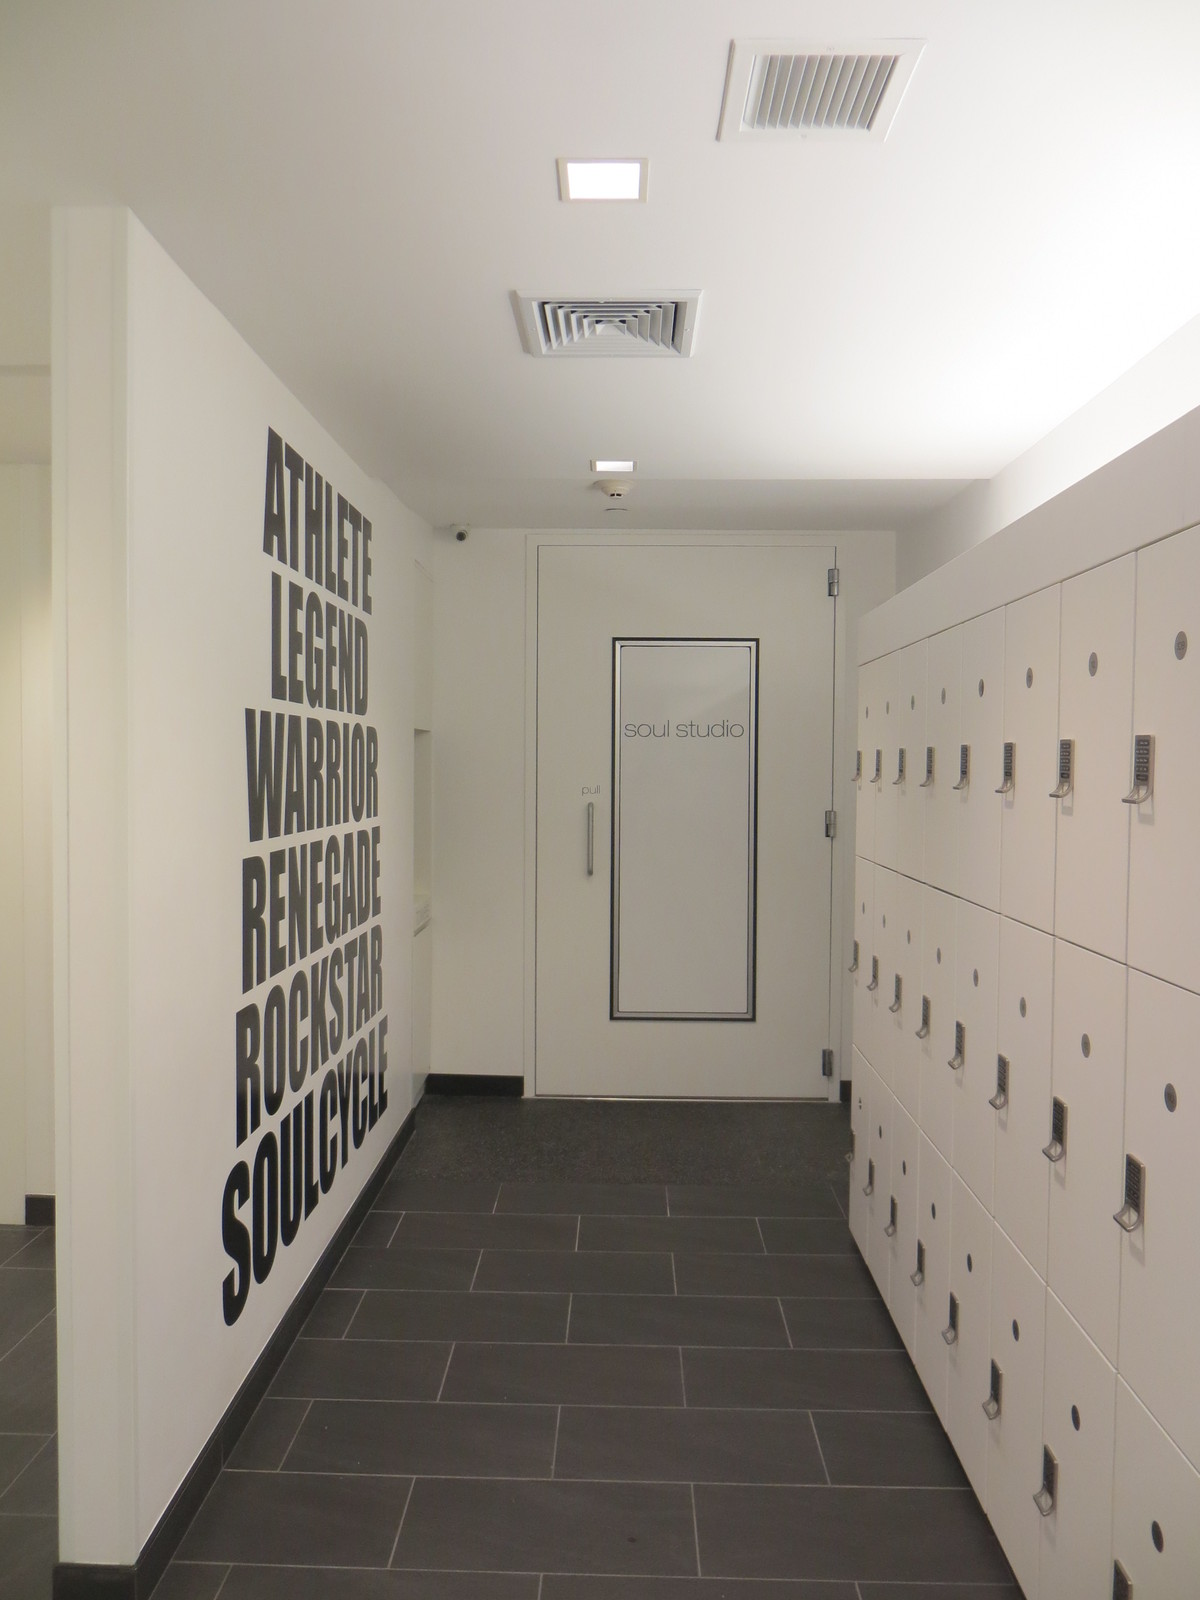 open locker room at studio entrance